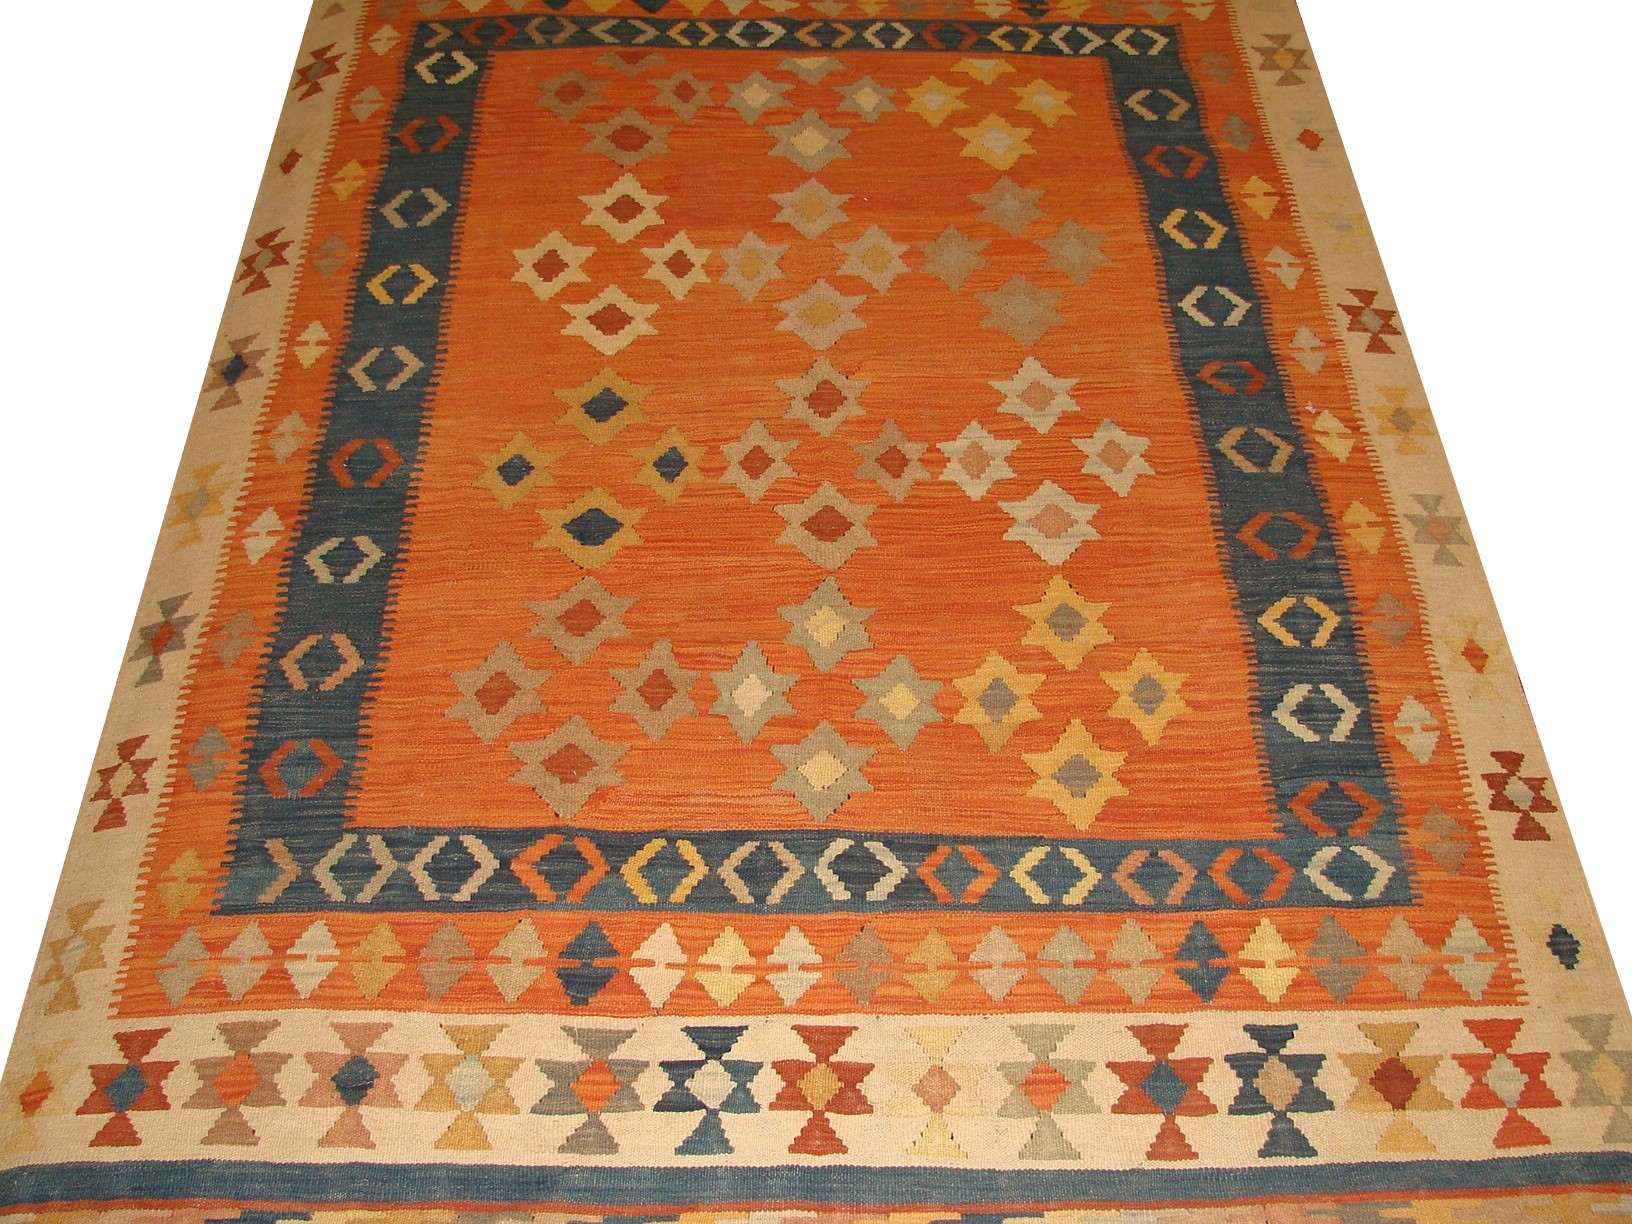 5x7/8 Flat Weave Hand Knotted Wool Area Rug - MR13323